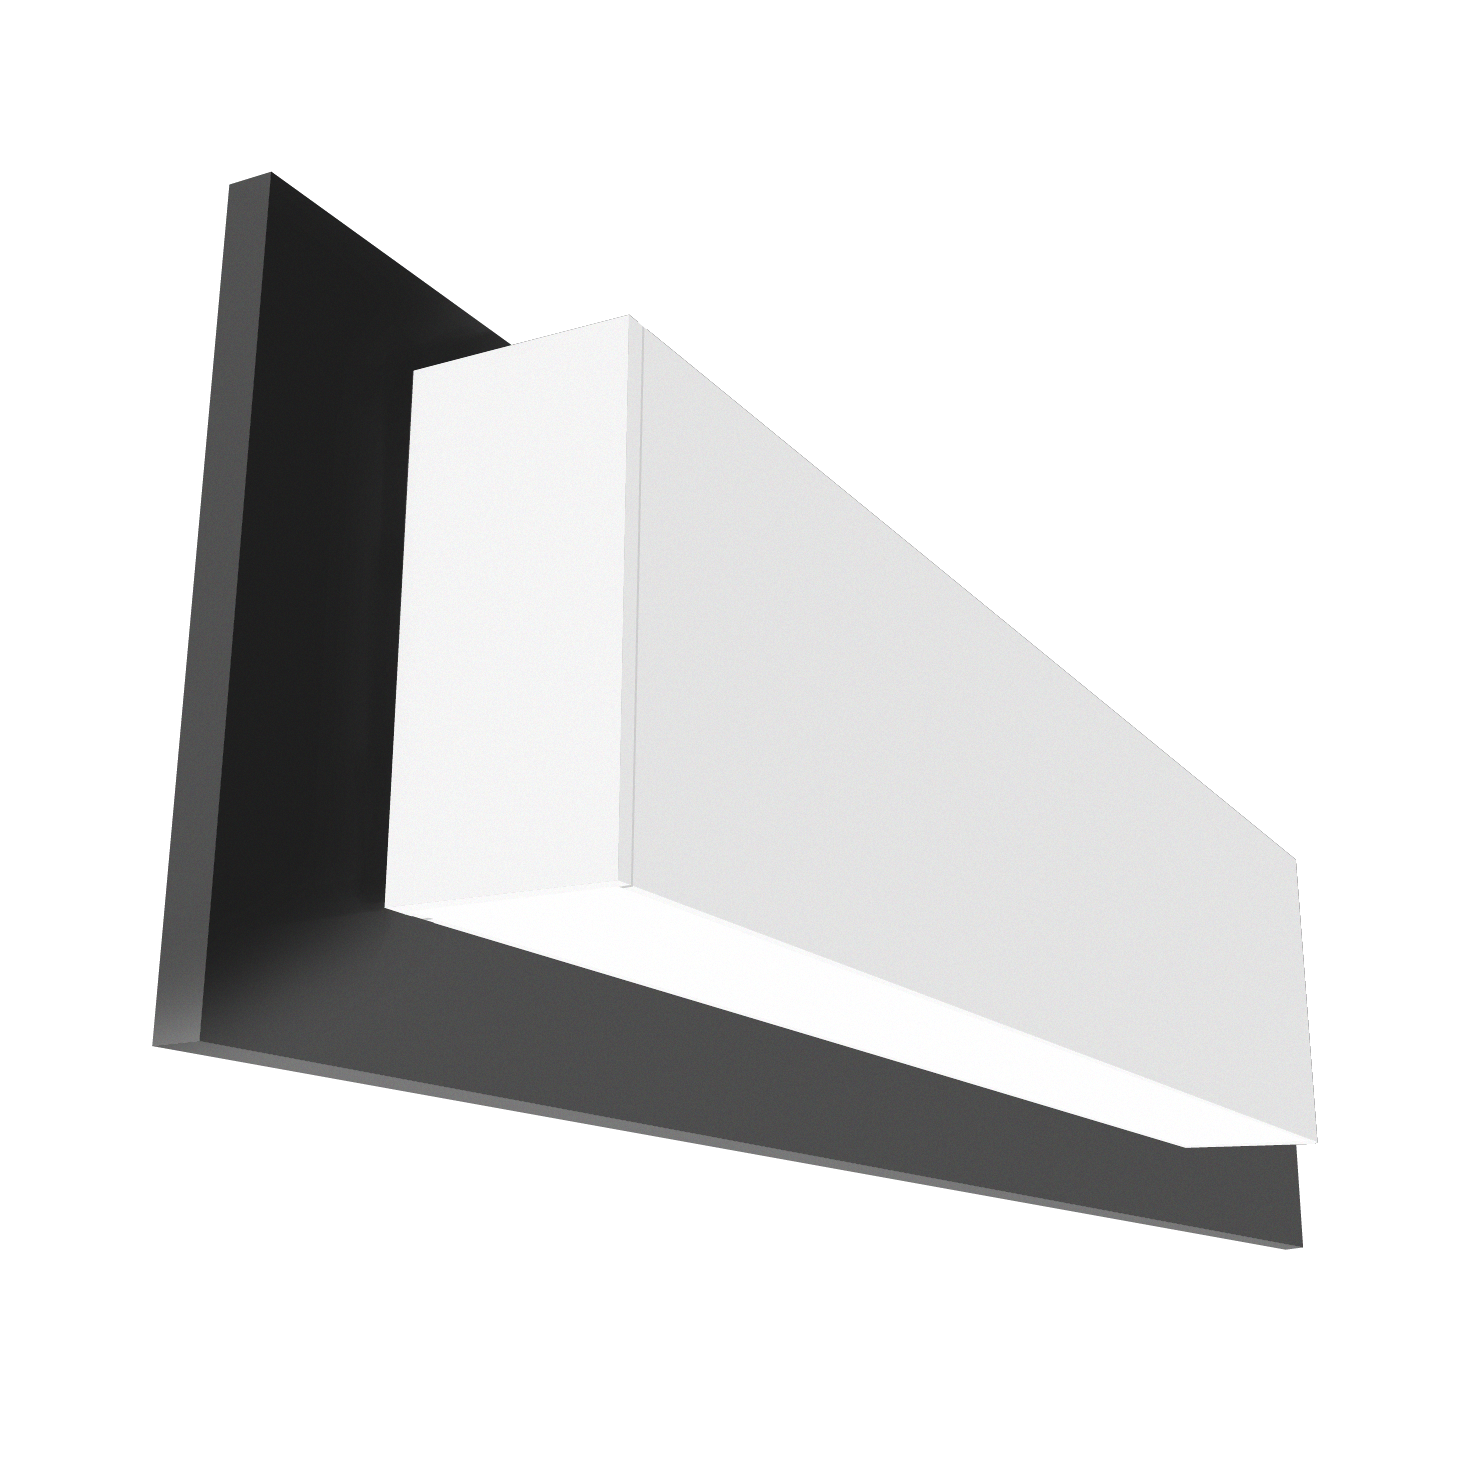 Alcon Lighting 14072 8 Illumine Architectural 5 Channel Color Tuning Led Foot Linear Wall Mount Direct Indirect Light Strip Fixture